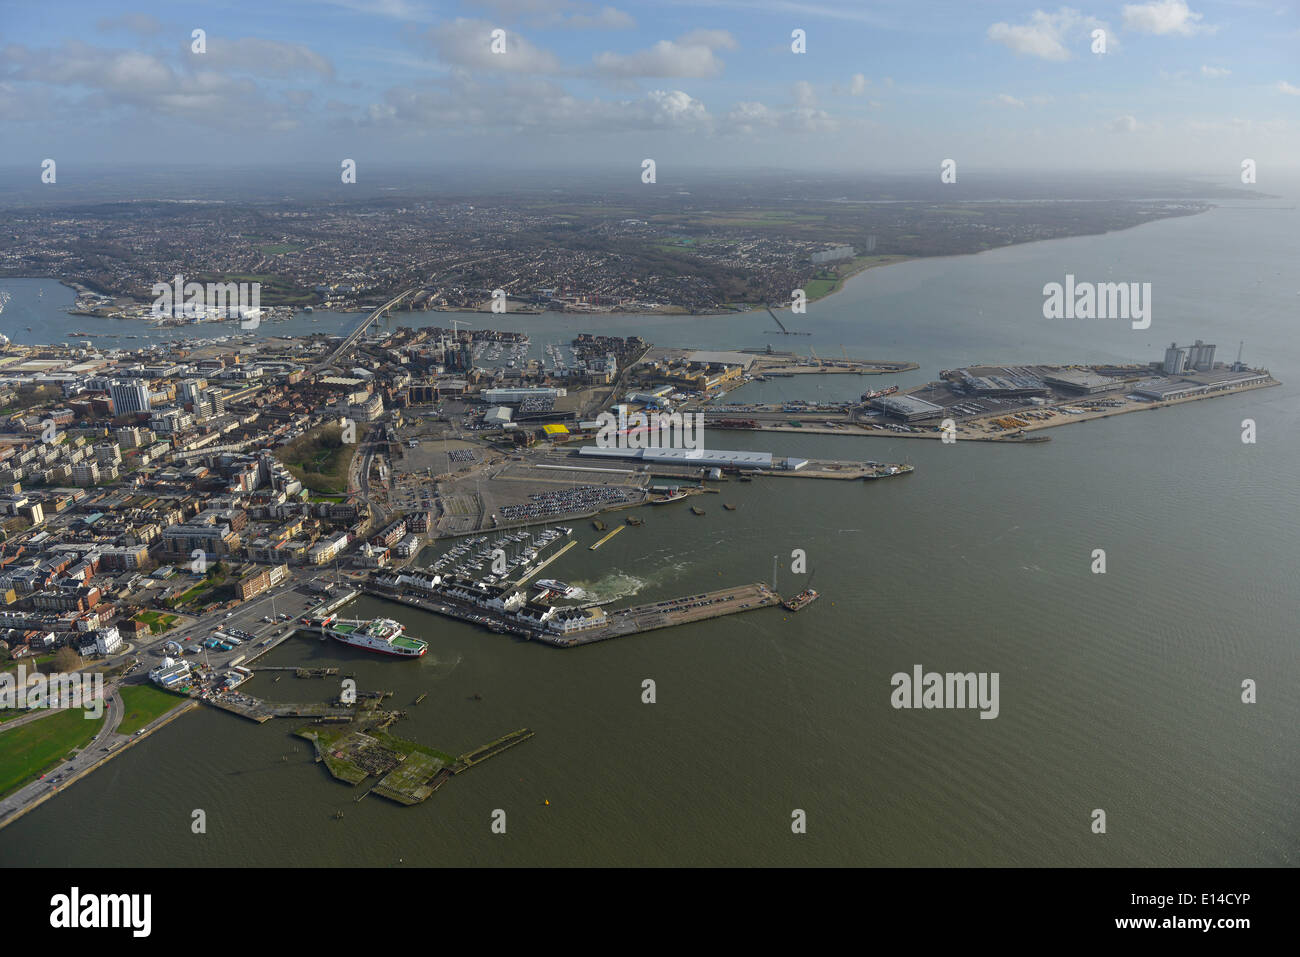 An aerial view of Southampton showing the docks and the mouth of the River Itchen - Stock Image